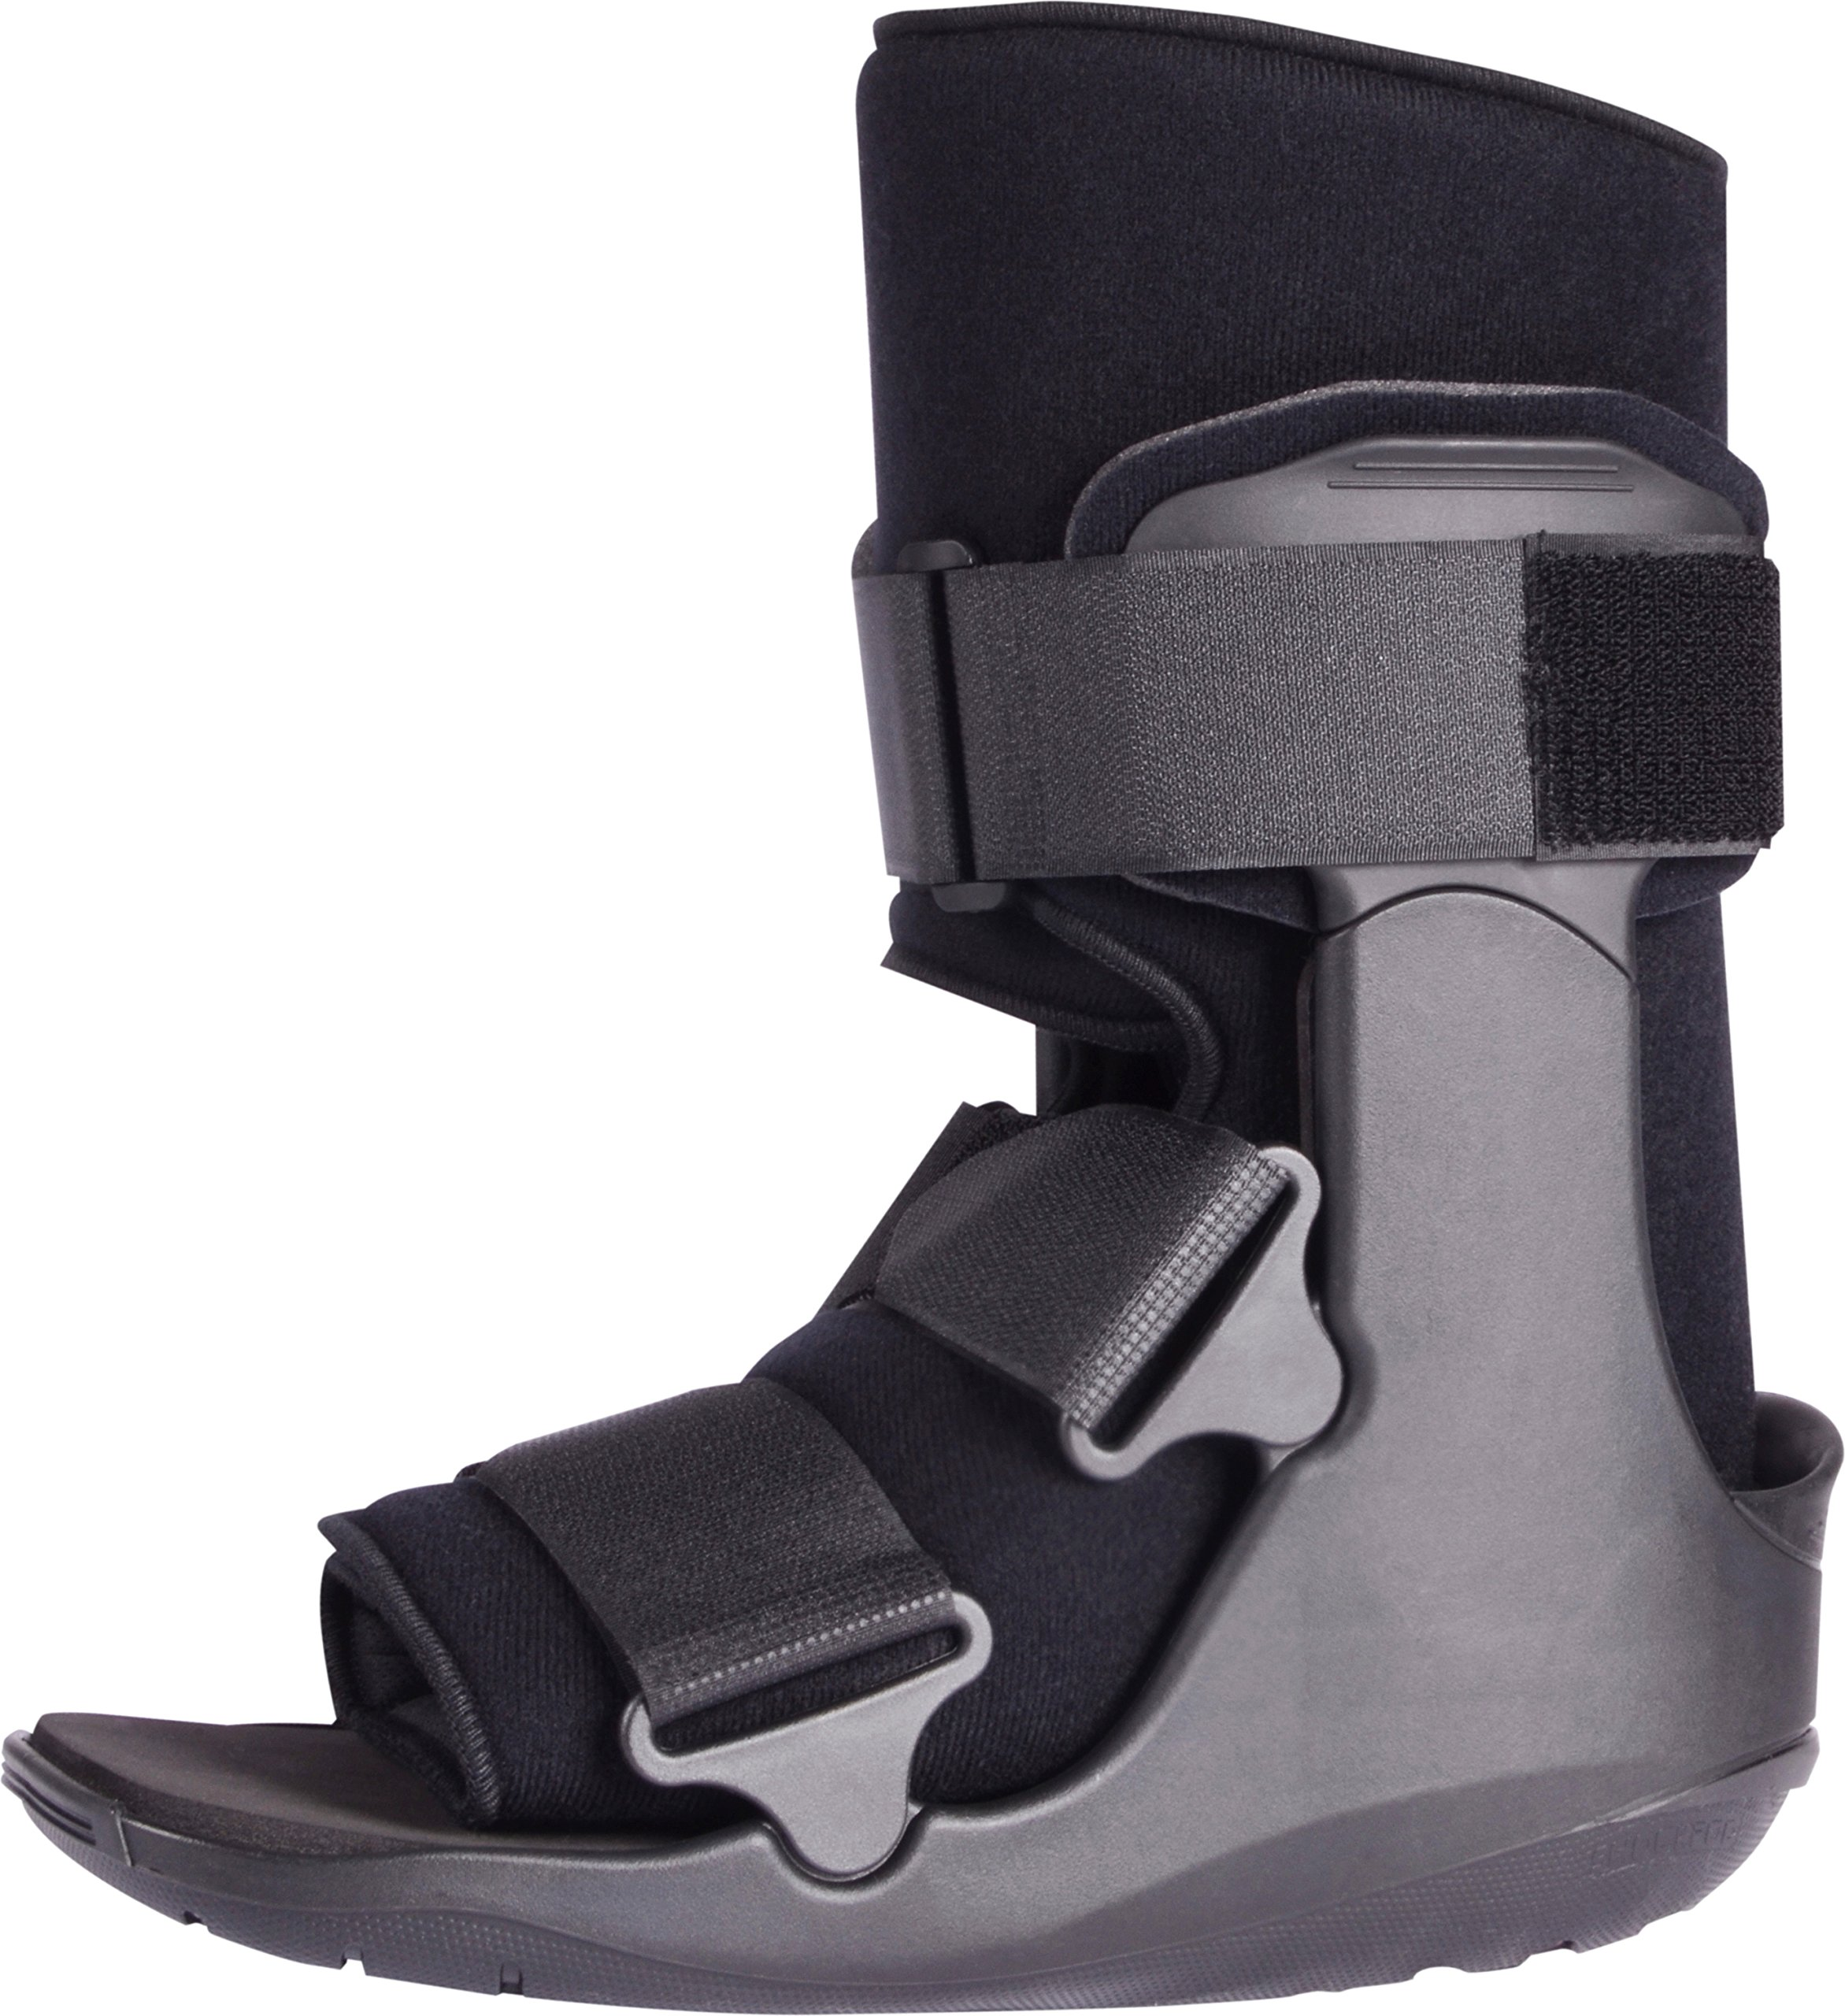 ProCare XcelTrax Ankle Walker Brace / Walking Boot, Medium